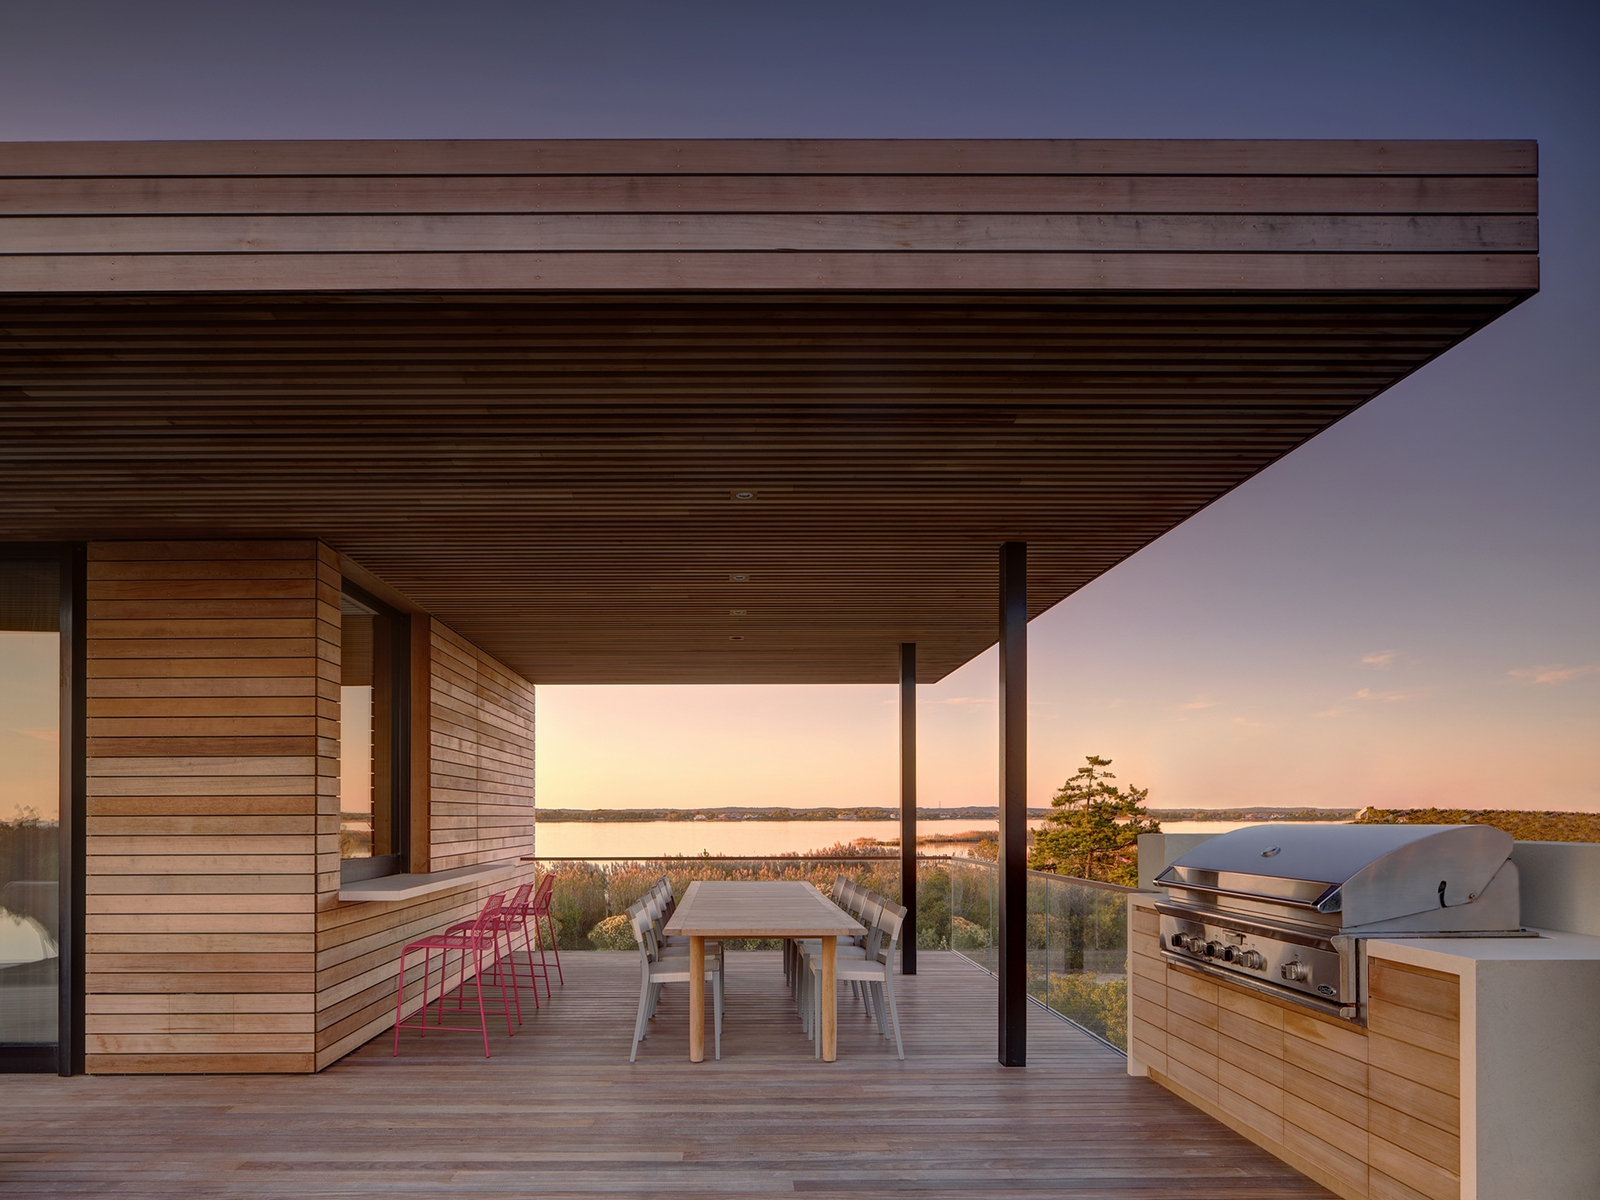 deck, seating, outdoor living, water view